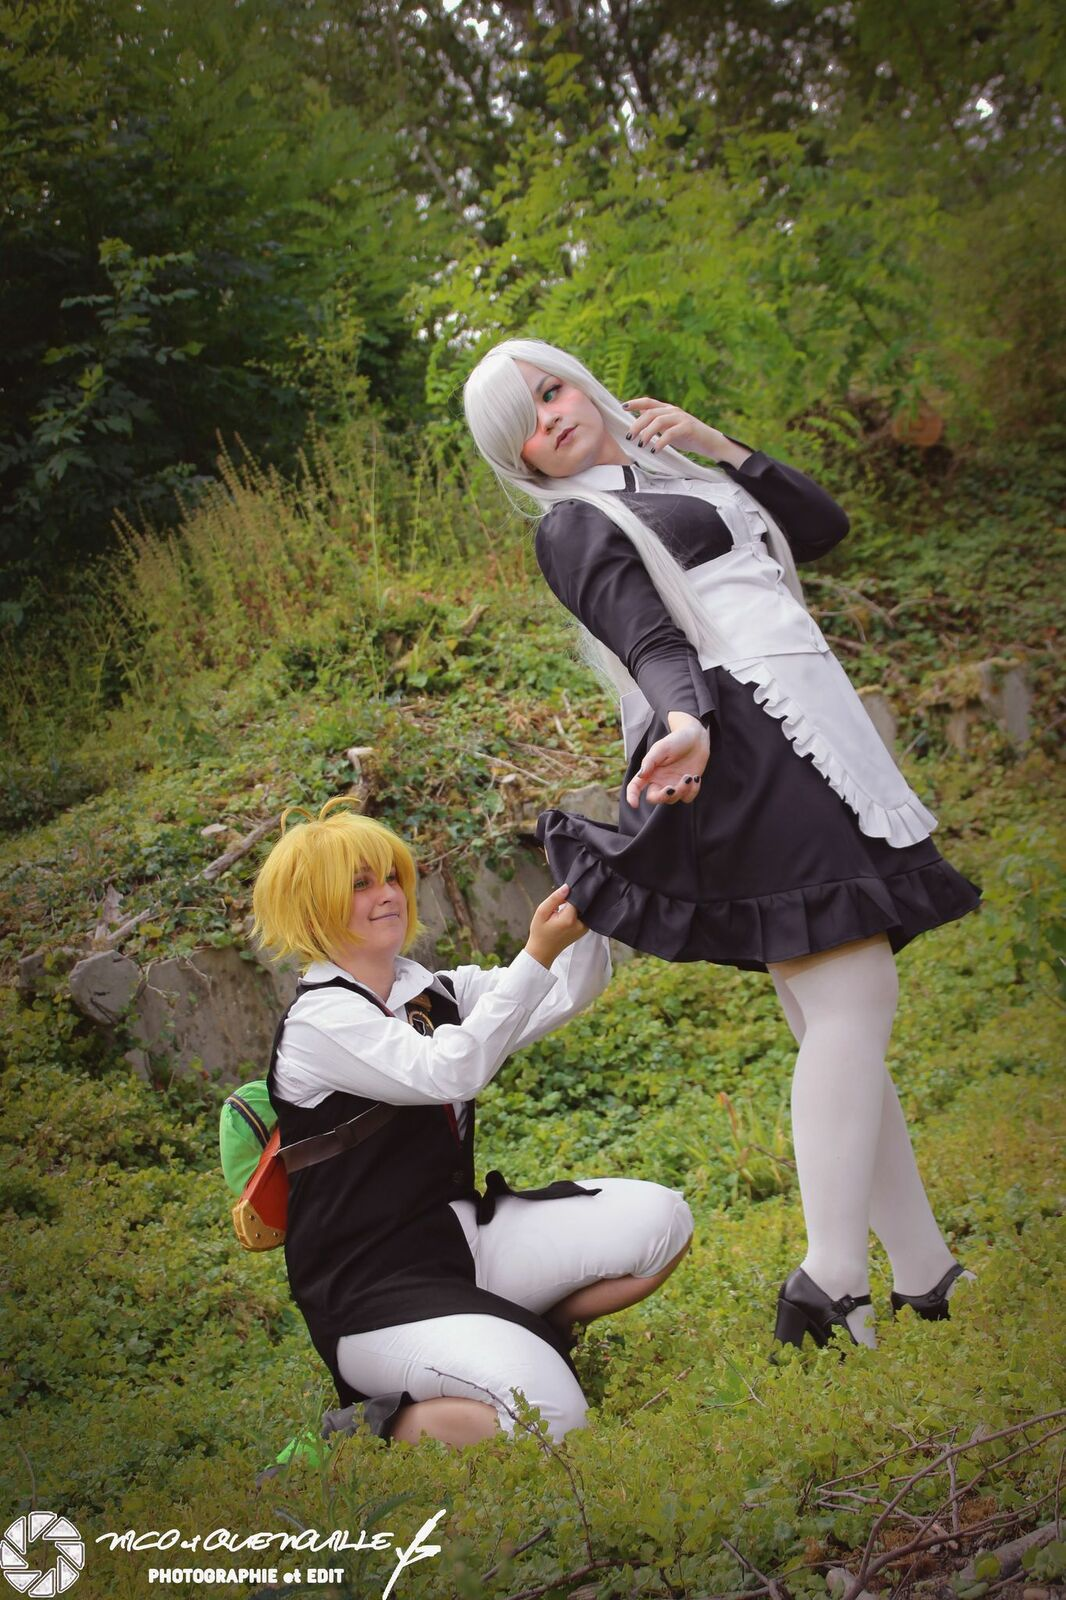 Parle-moi Cosplay #462 : Quenouille Cosplay